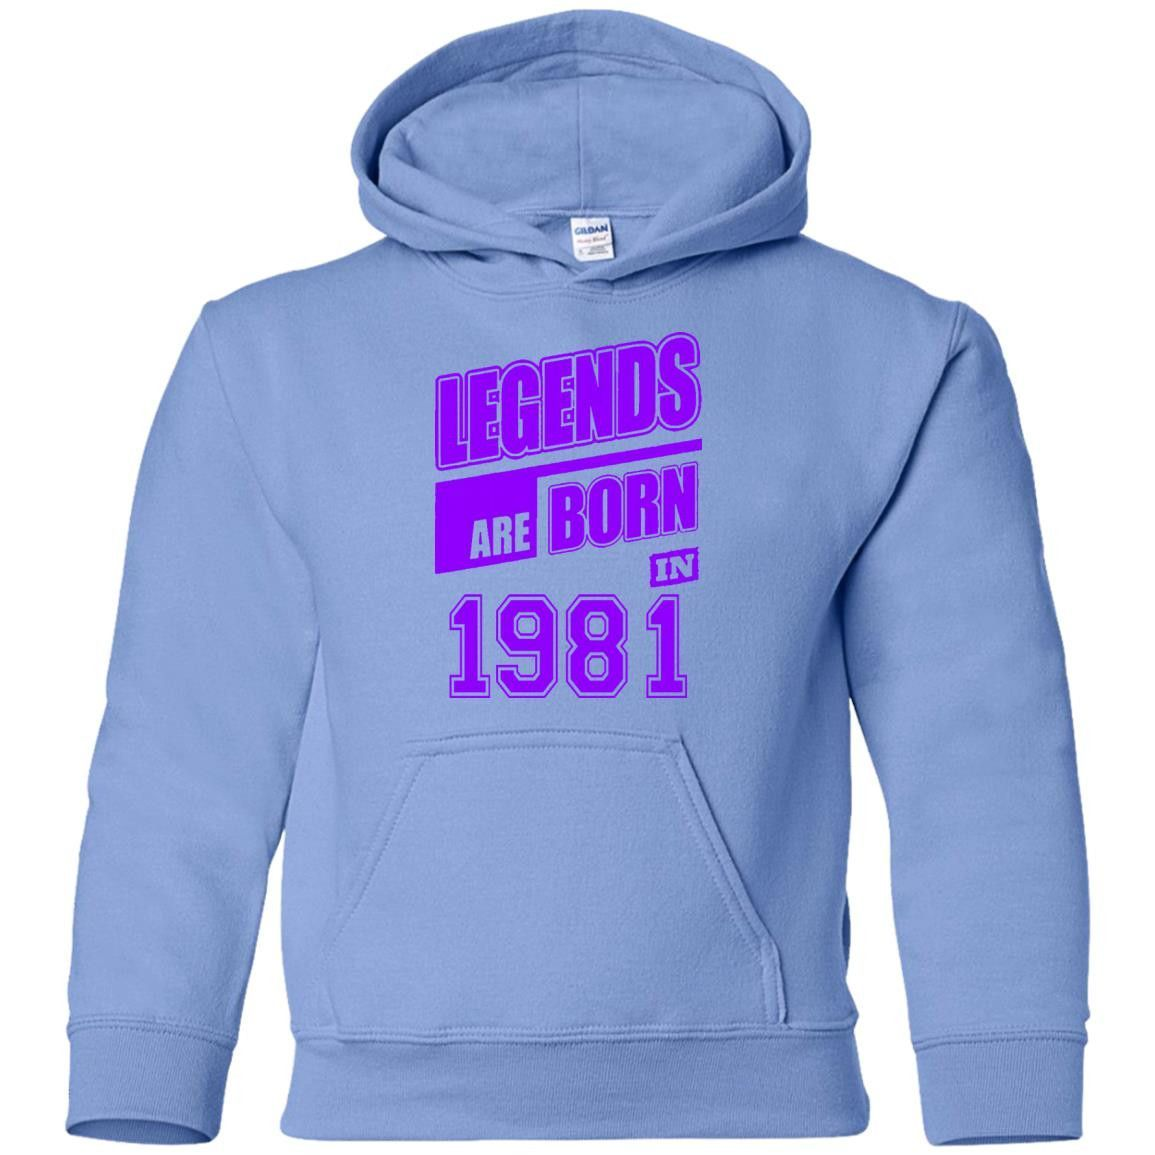 LEGENDS ARE BORN IN 1981 19 G185B Gildan Youth Pullover Hoodie